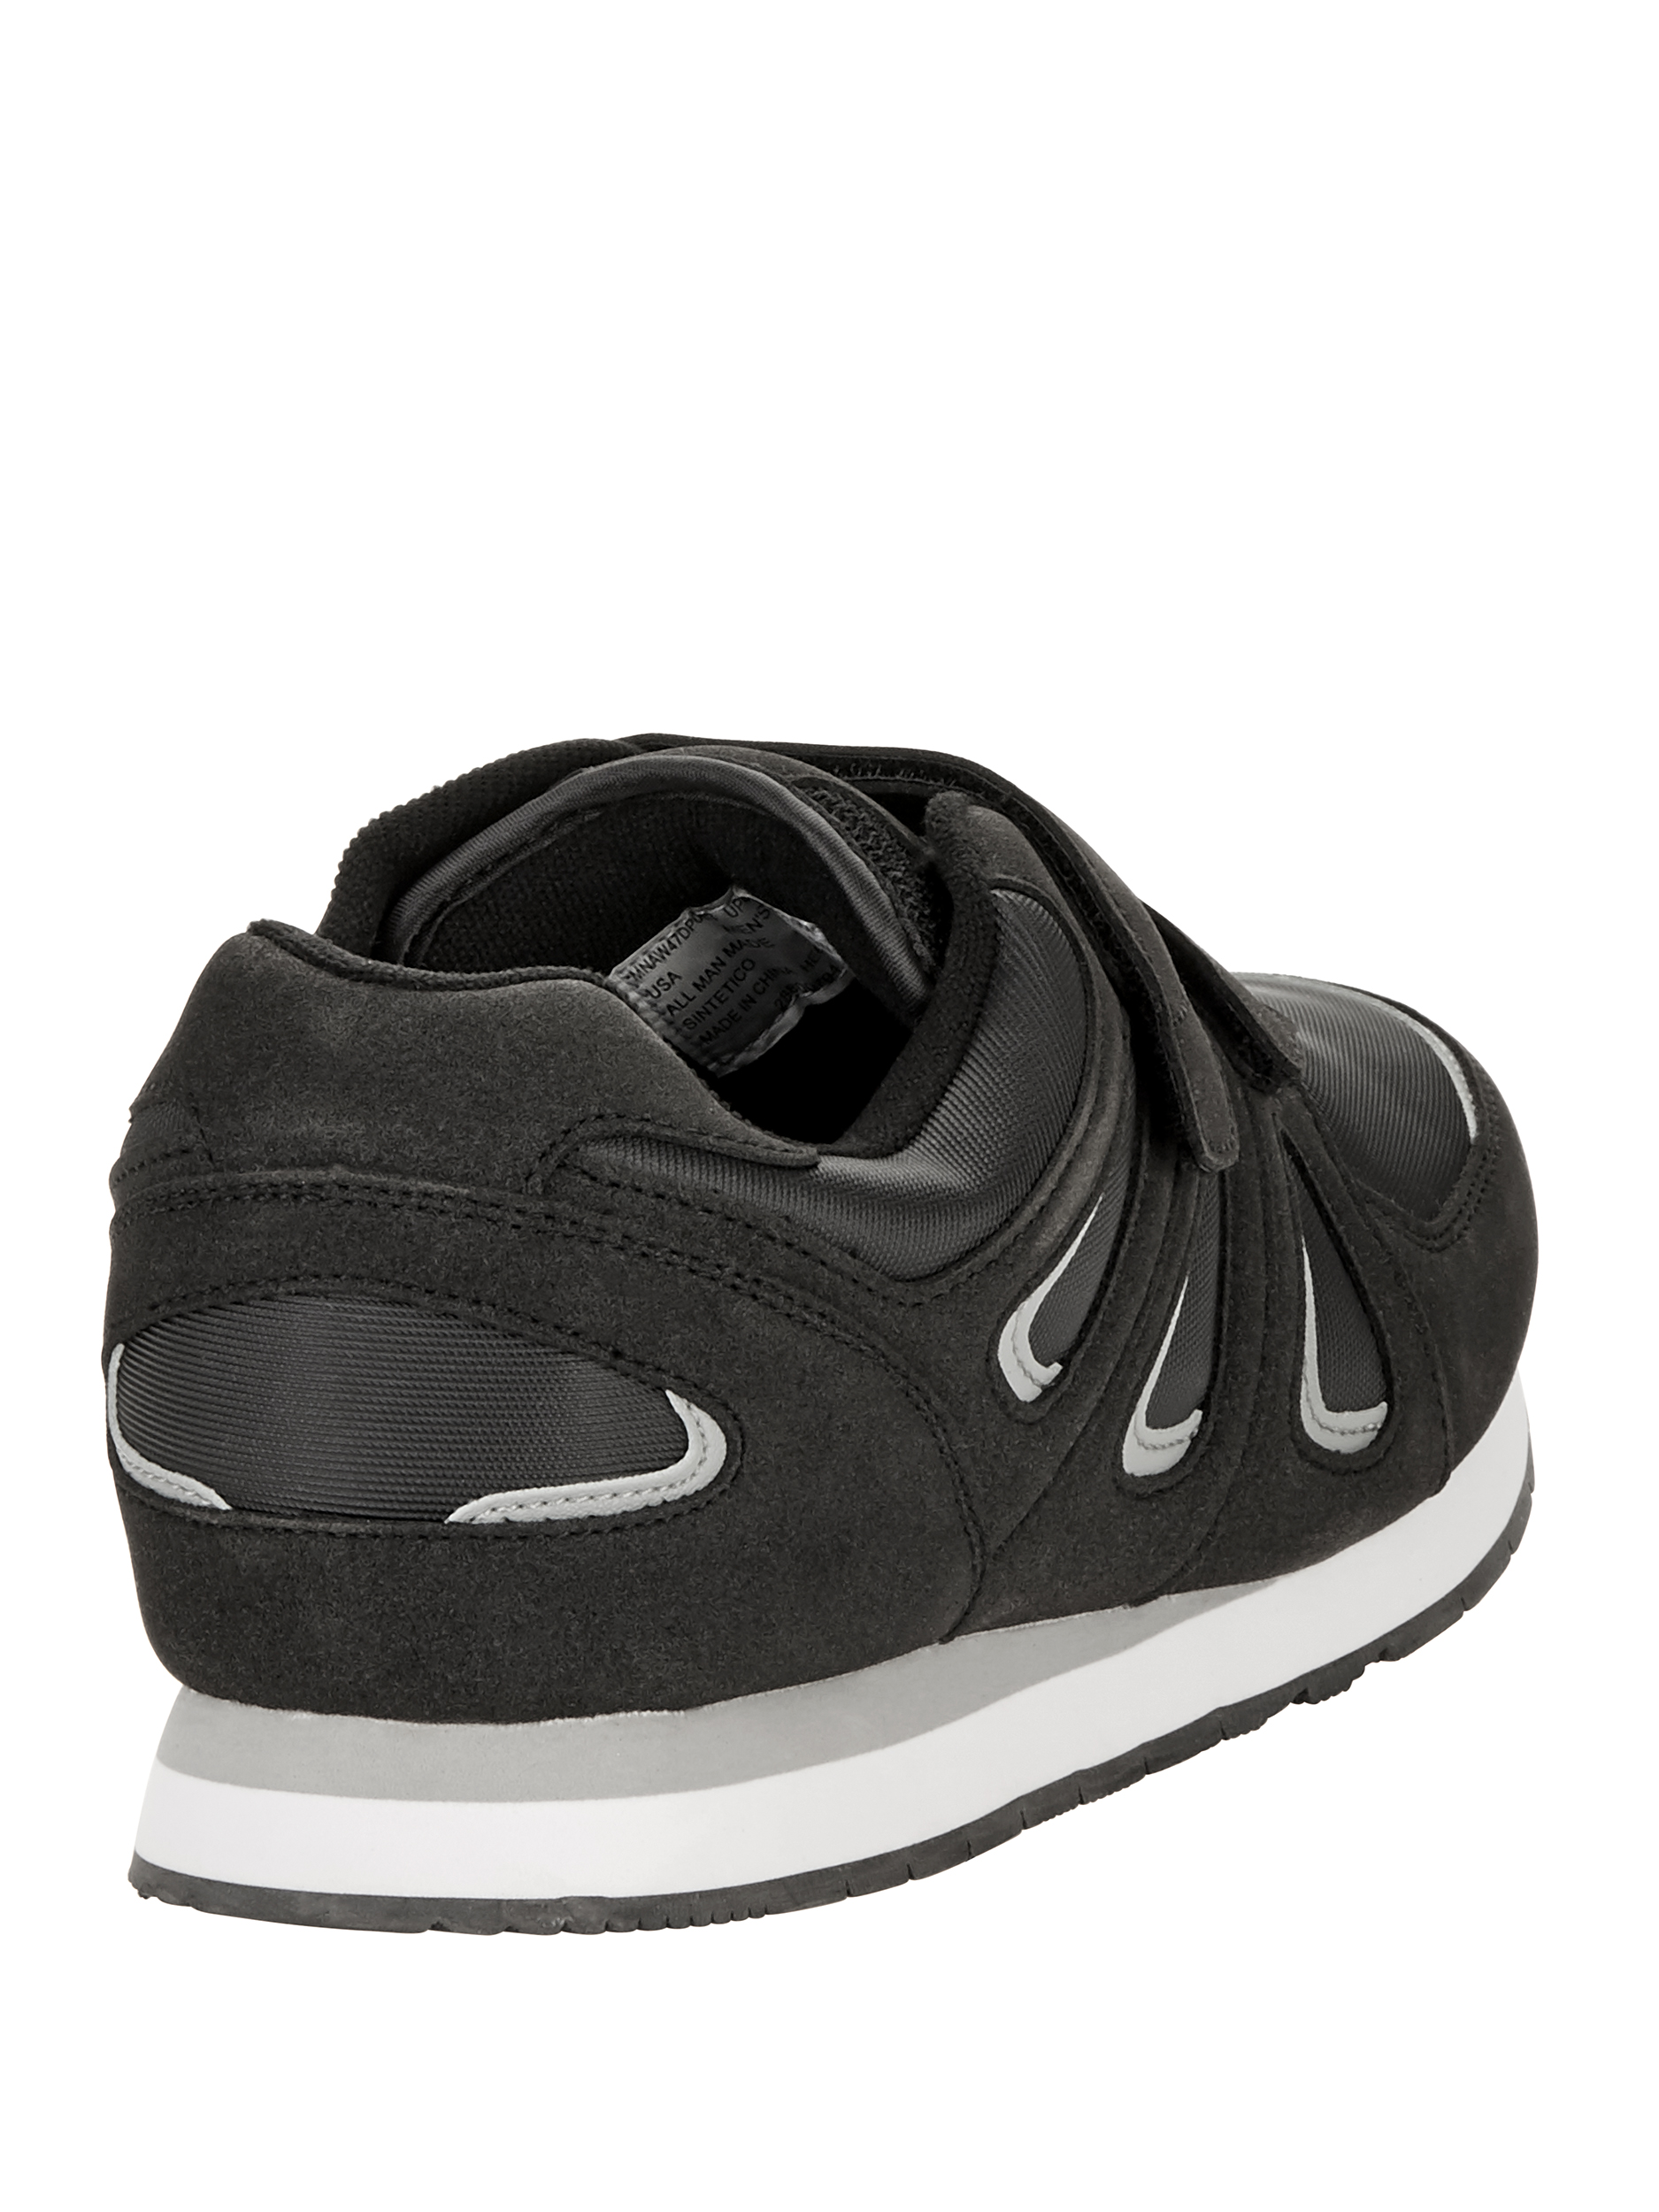 Silver Series Athletic Shoe